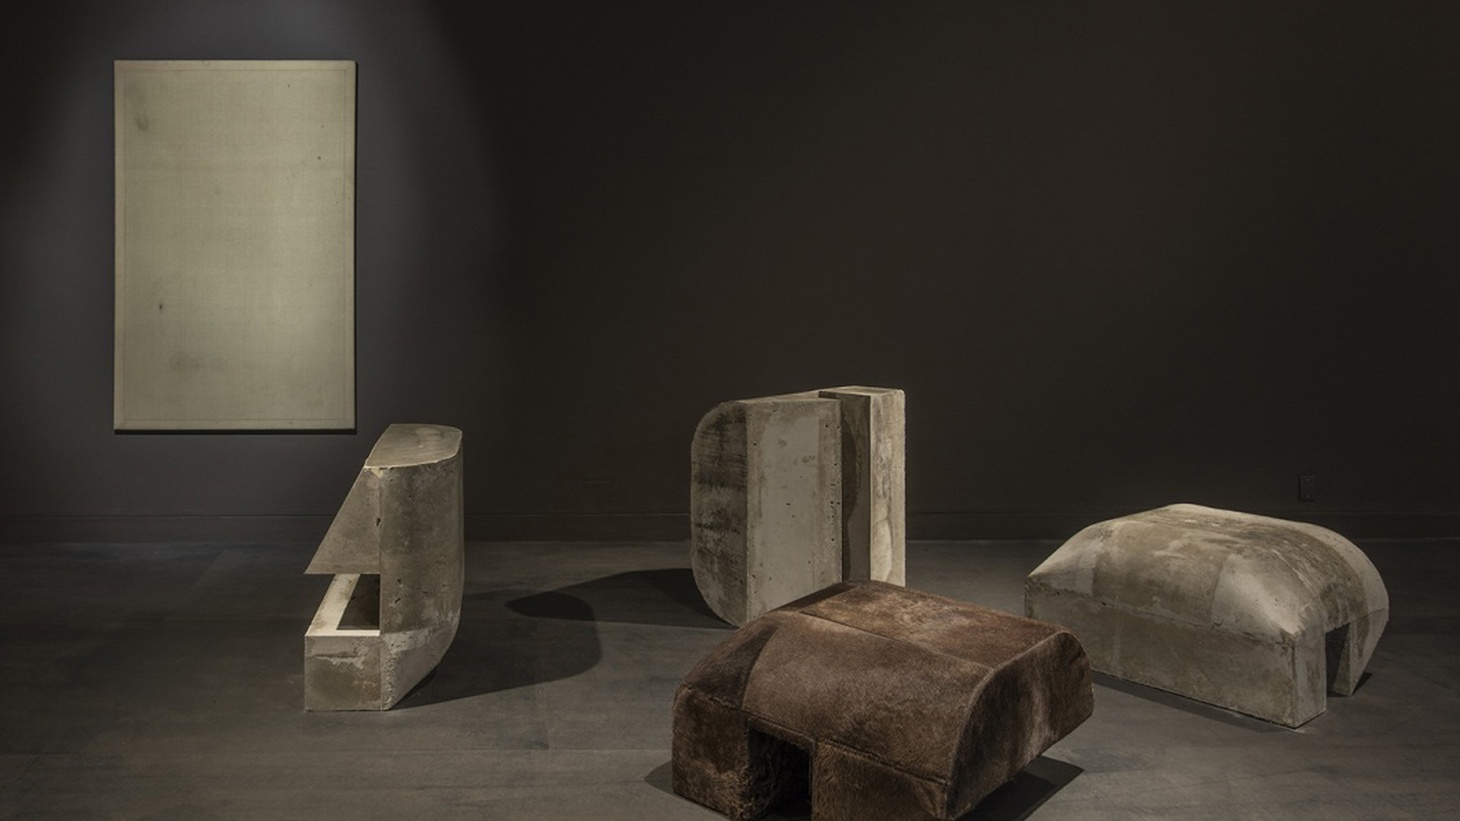 """Installation view of """"Rick Owens: Furniture"""" atMOCA Pacific Design Center Photo courtesy of The Museum of Contemporary Art, Los Angeles."""